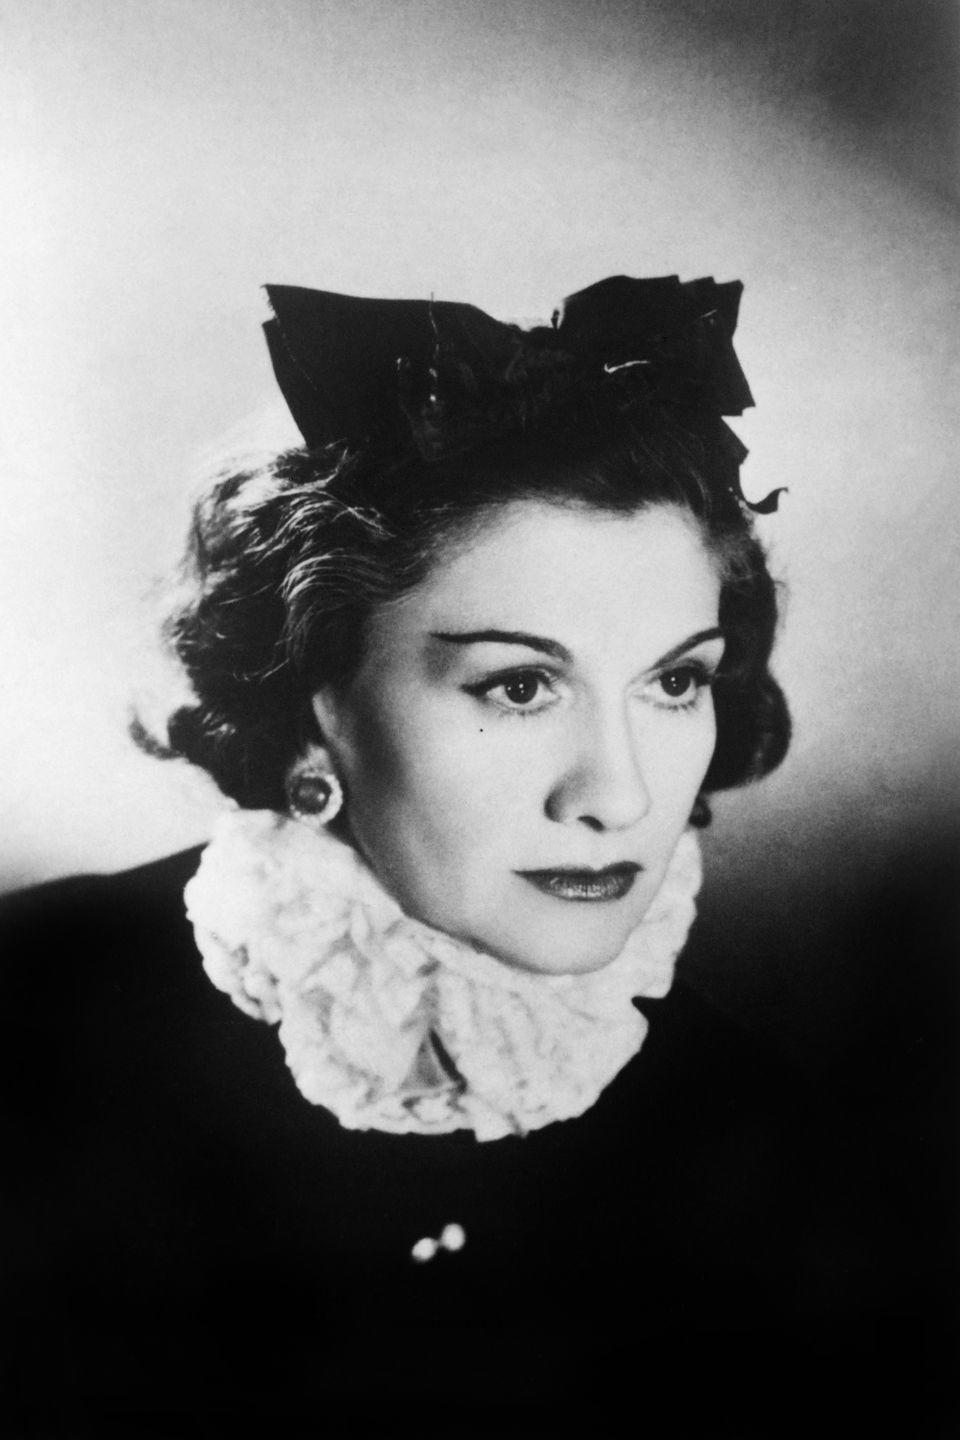 <p>Coco Chanel poses for a portrait wearing a ruffled collar and bow in her hair.</p>